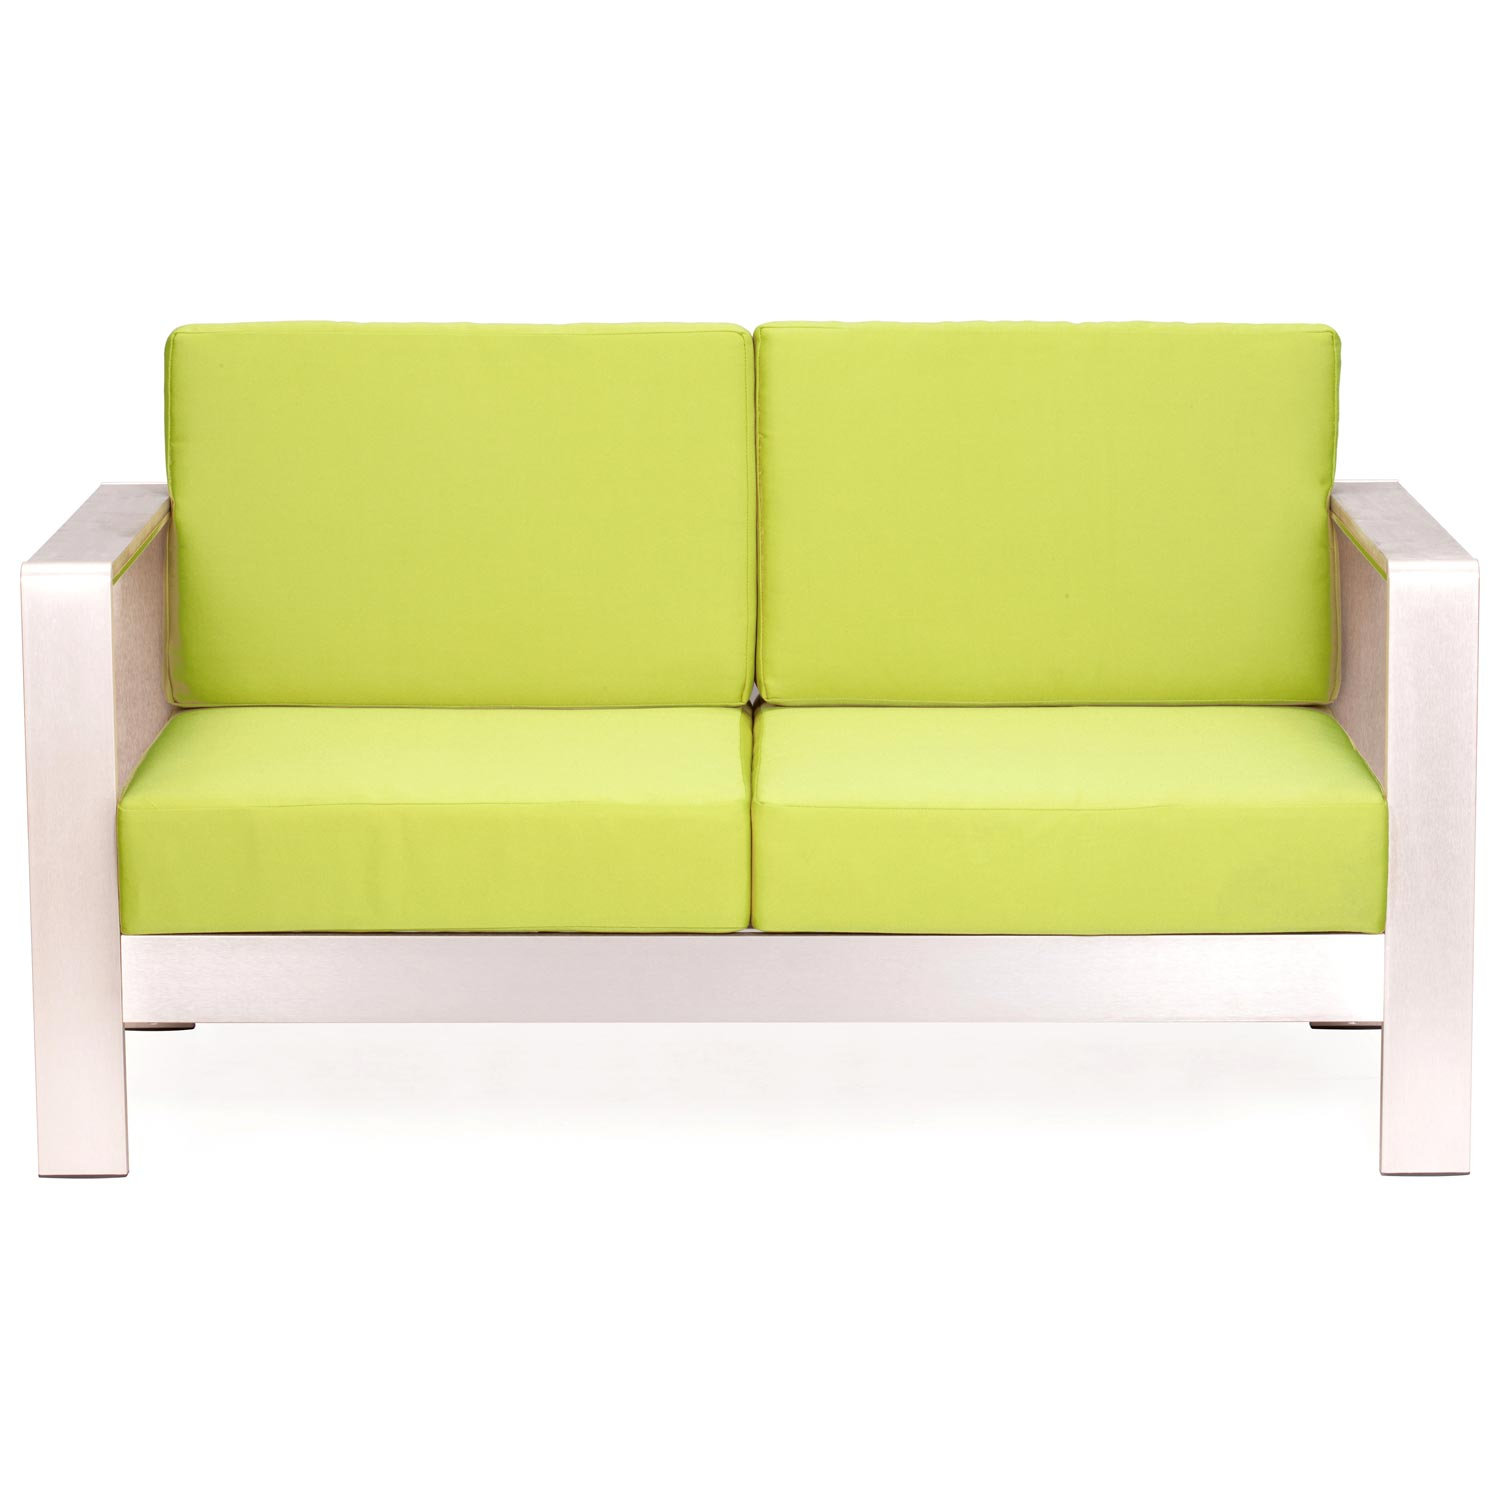 Cosmopolitan Patio Sofa - Brushed Aluminum, Teak, Green - ZM-701850-703653